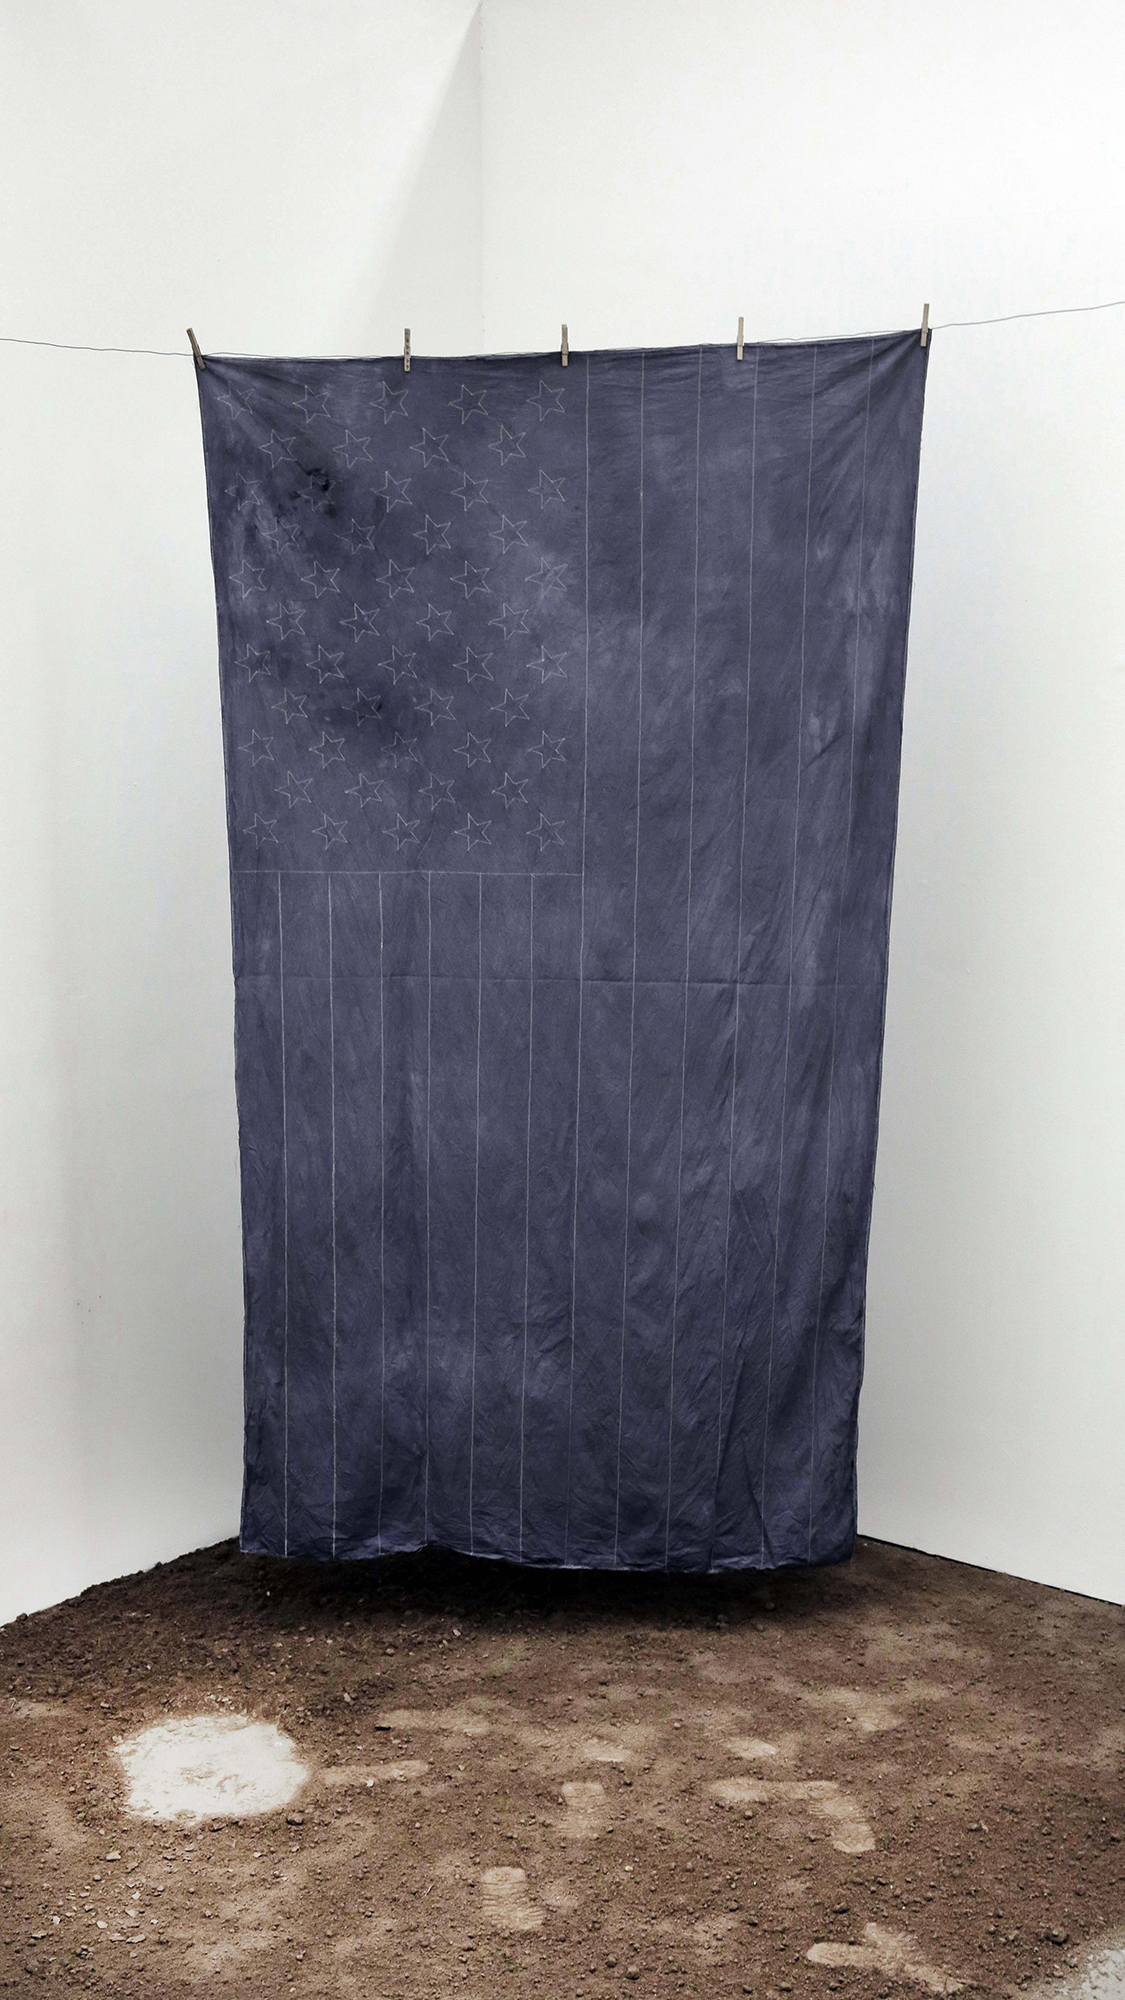 Ariel Jackson  All I See Is Blue  2017 Top layer soil from the Bronx, muslin fabric, blue dye, clothespins, wire polyester thread 72 x 108 inches